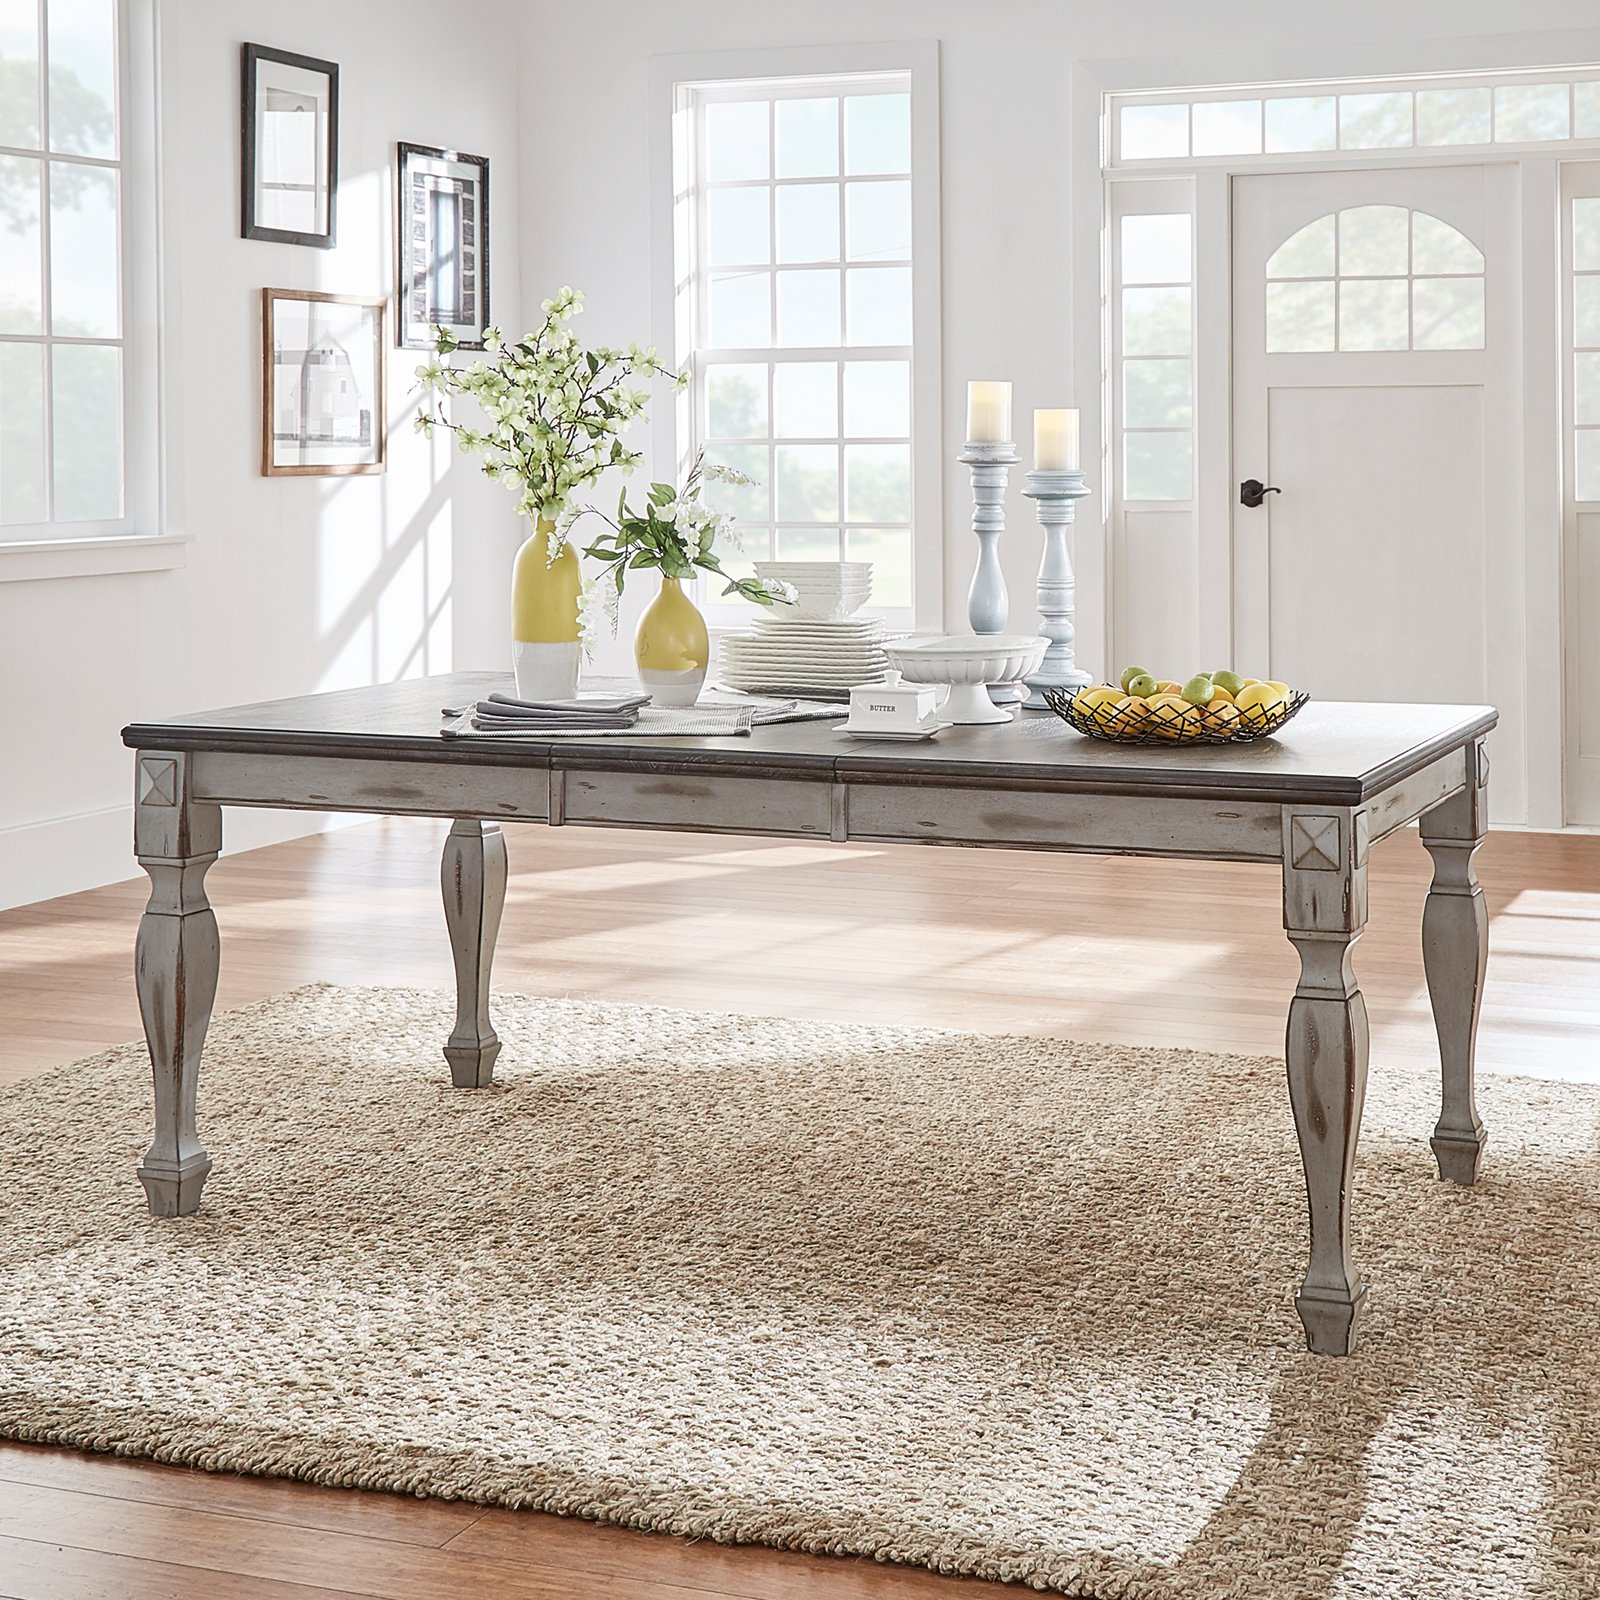 Weston Home Two Tone Extension Dining Table